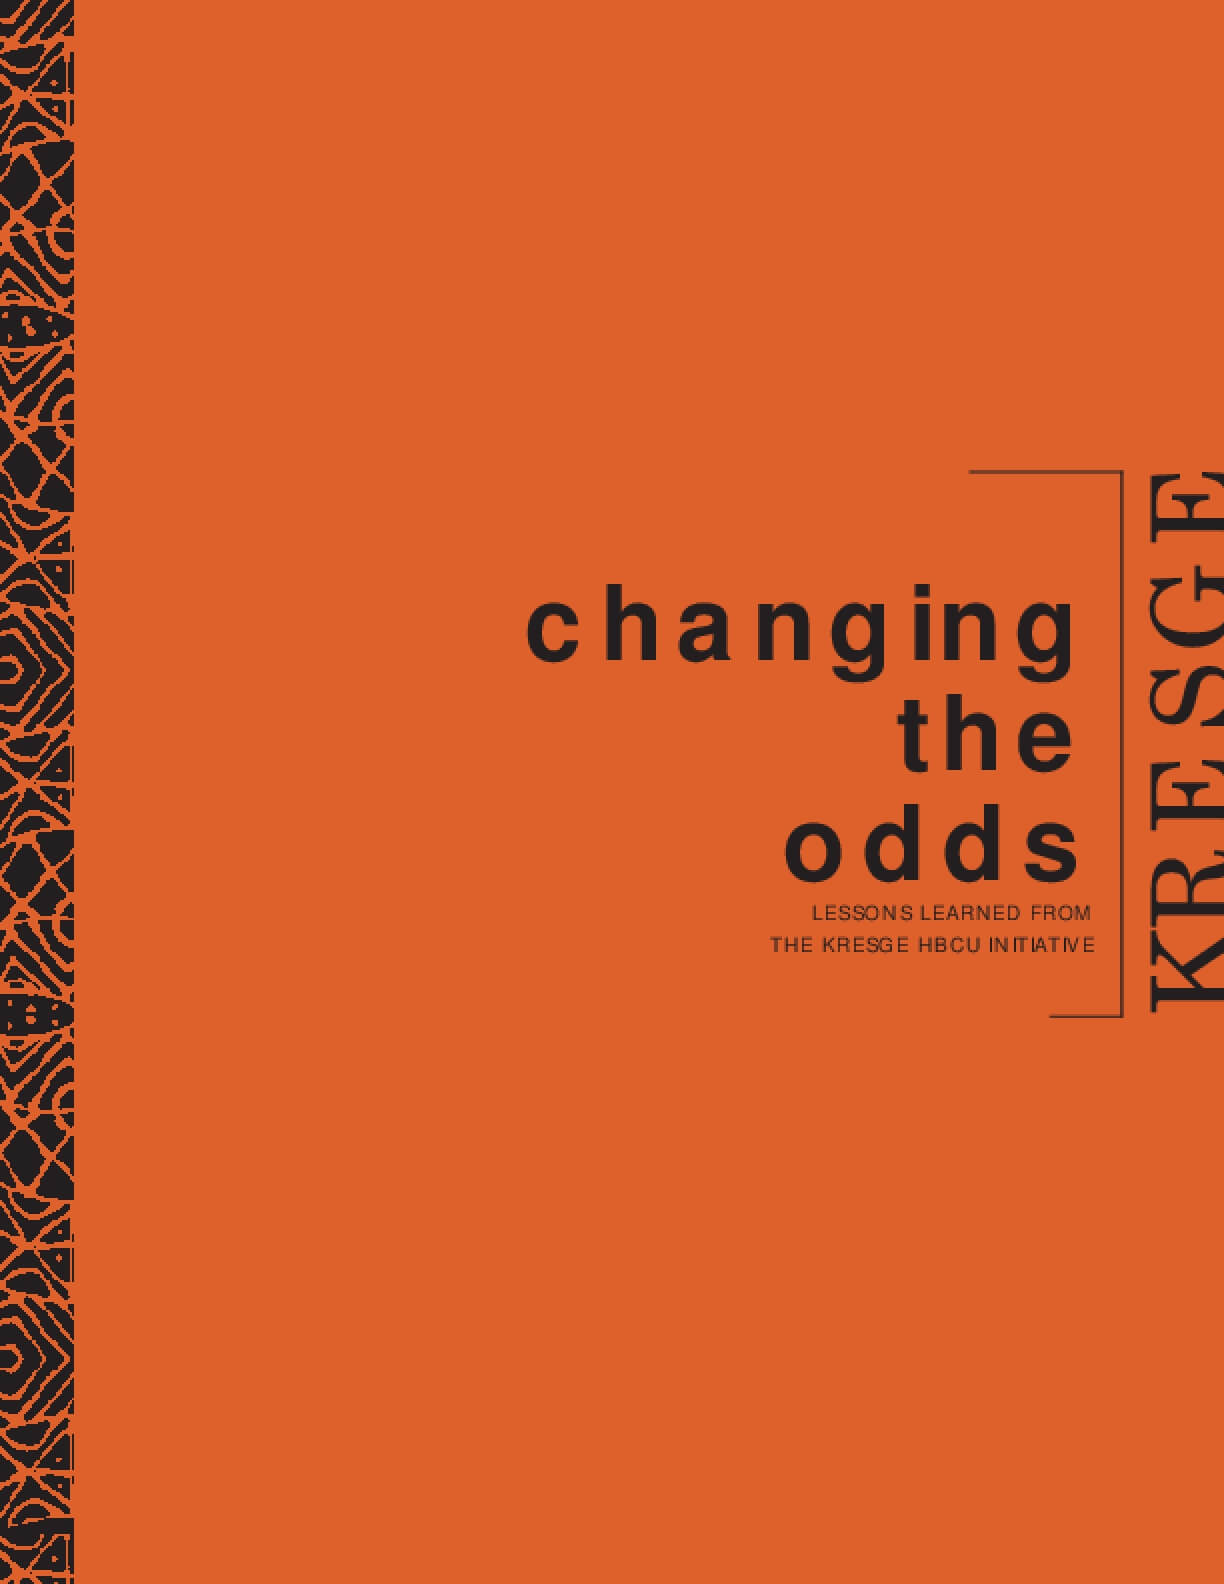 Changing the Odds: Lessons Learned From the Kresge HBCU Initiative